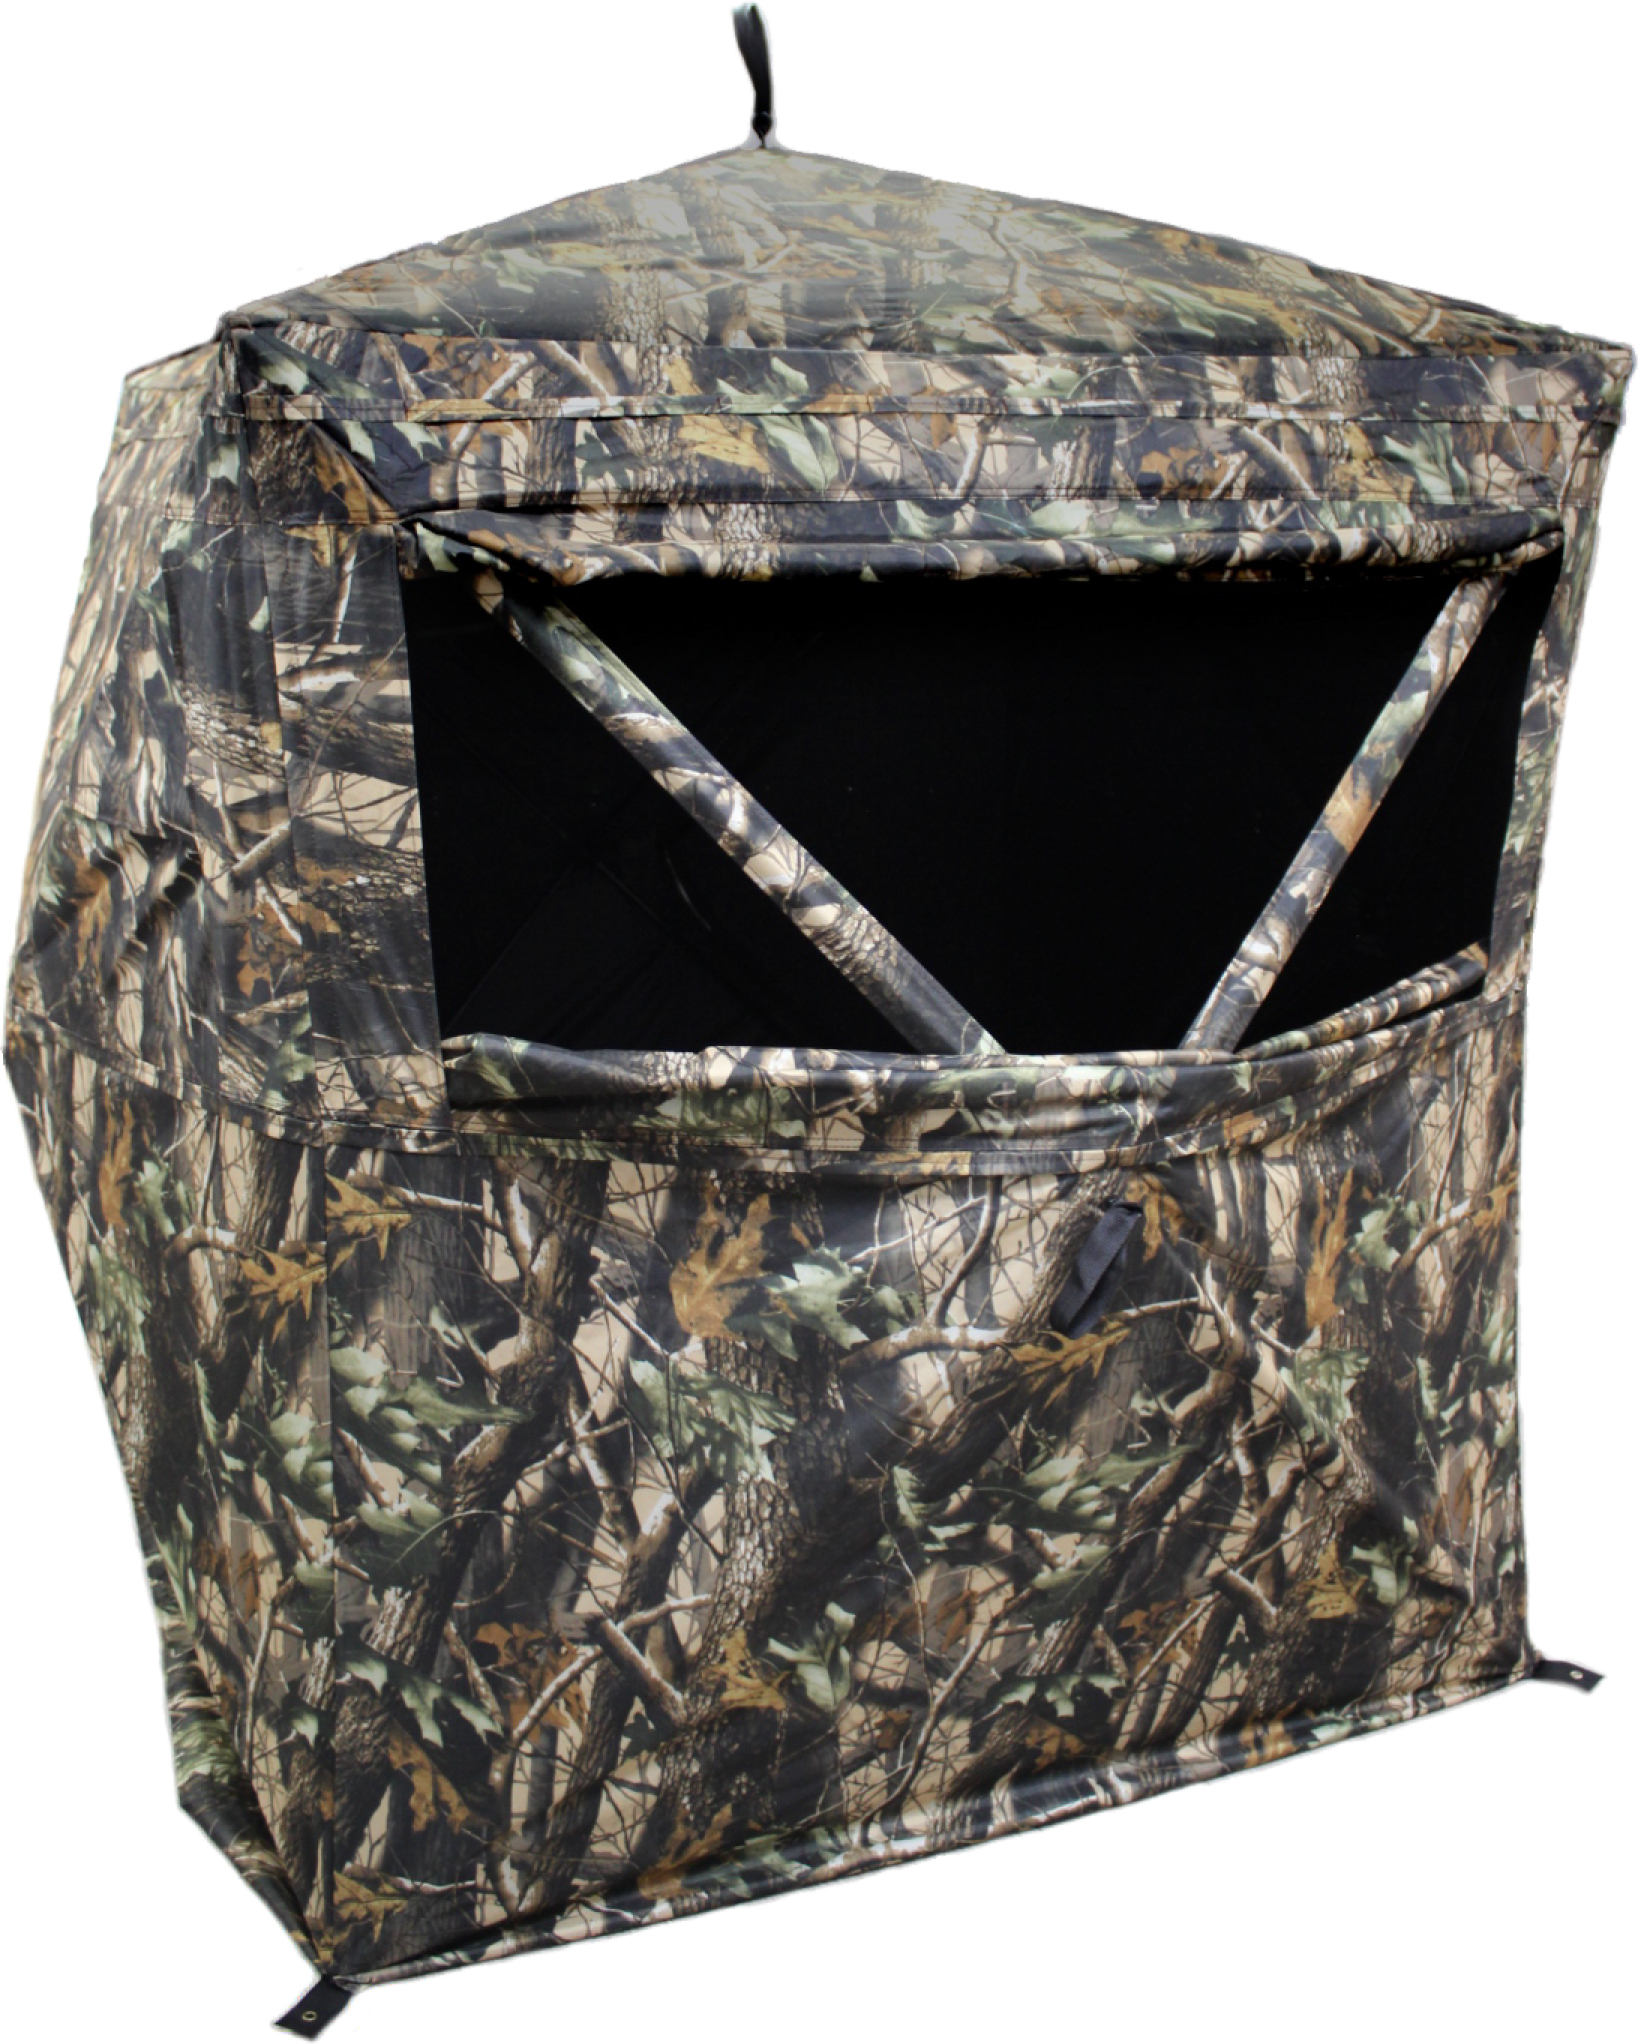 ground blind archery hunting blinds com person camouflage deer tent ip outhouse walmart